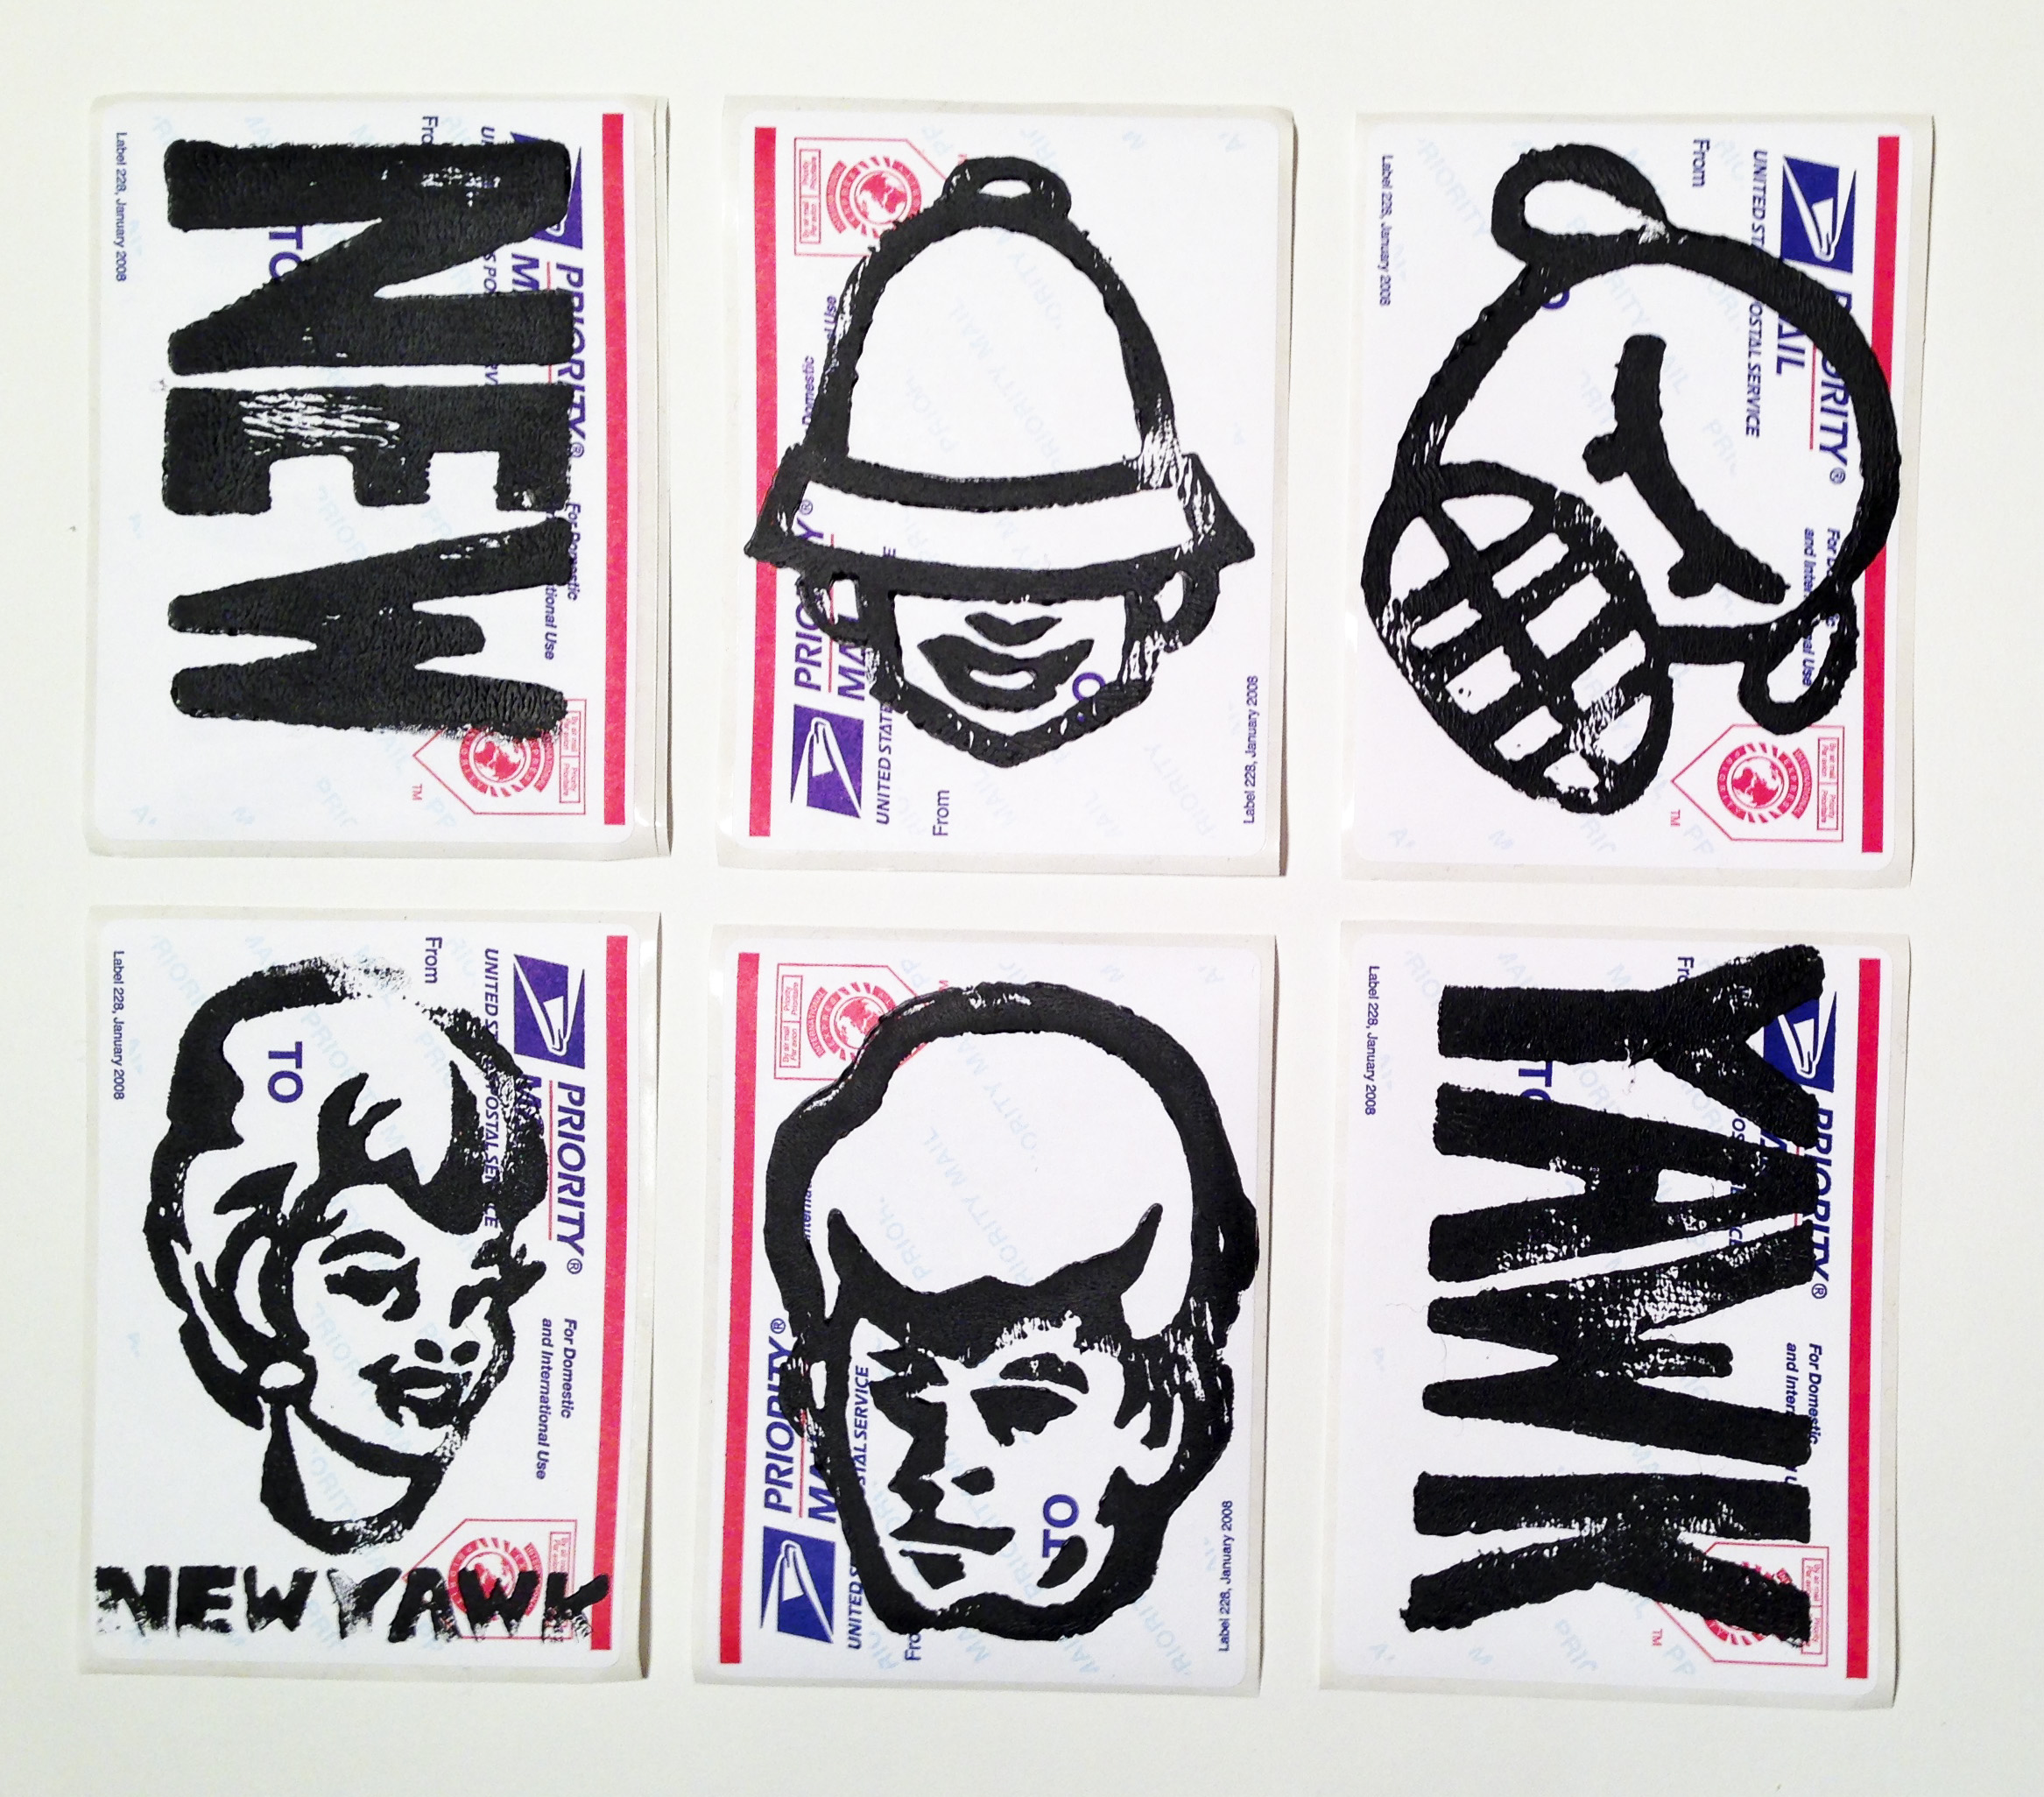 NEWYAWK Sticker pack